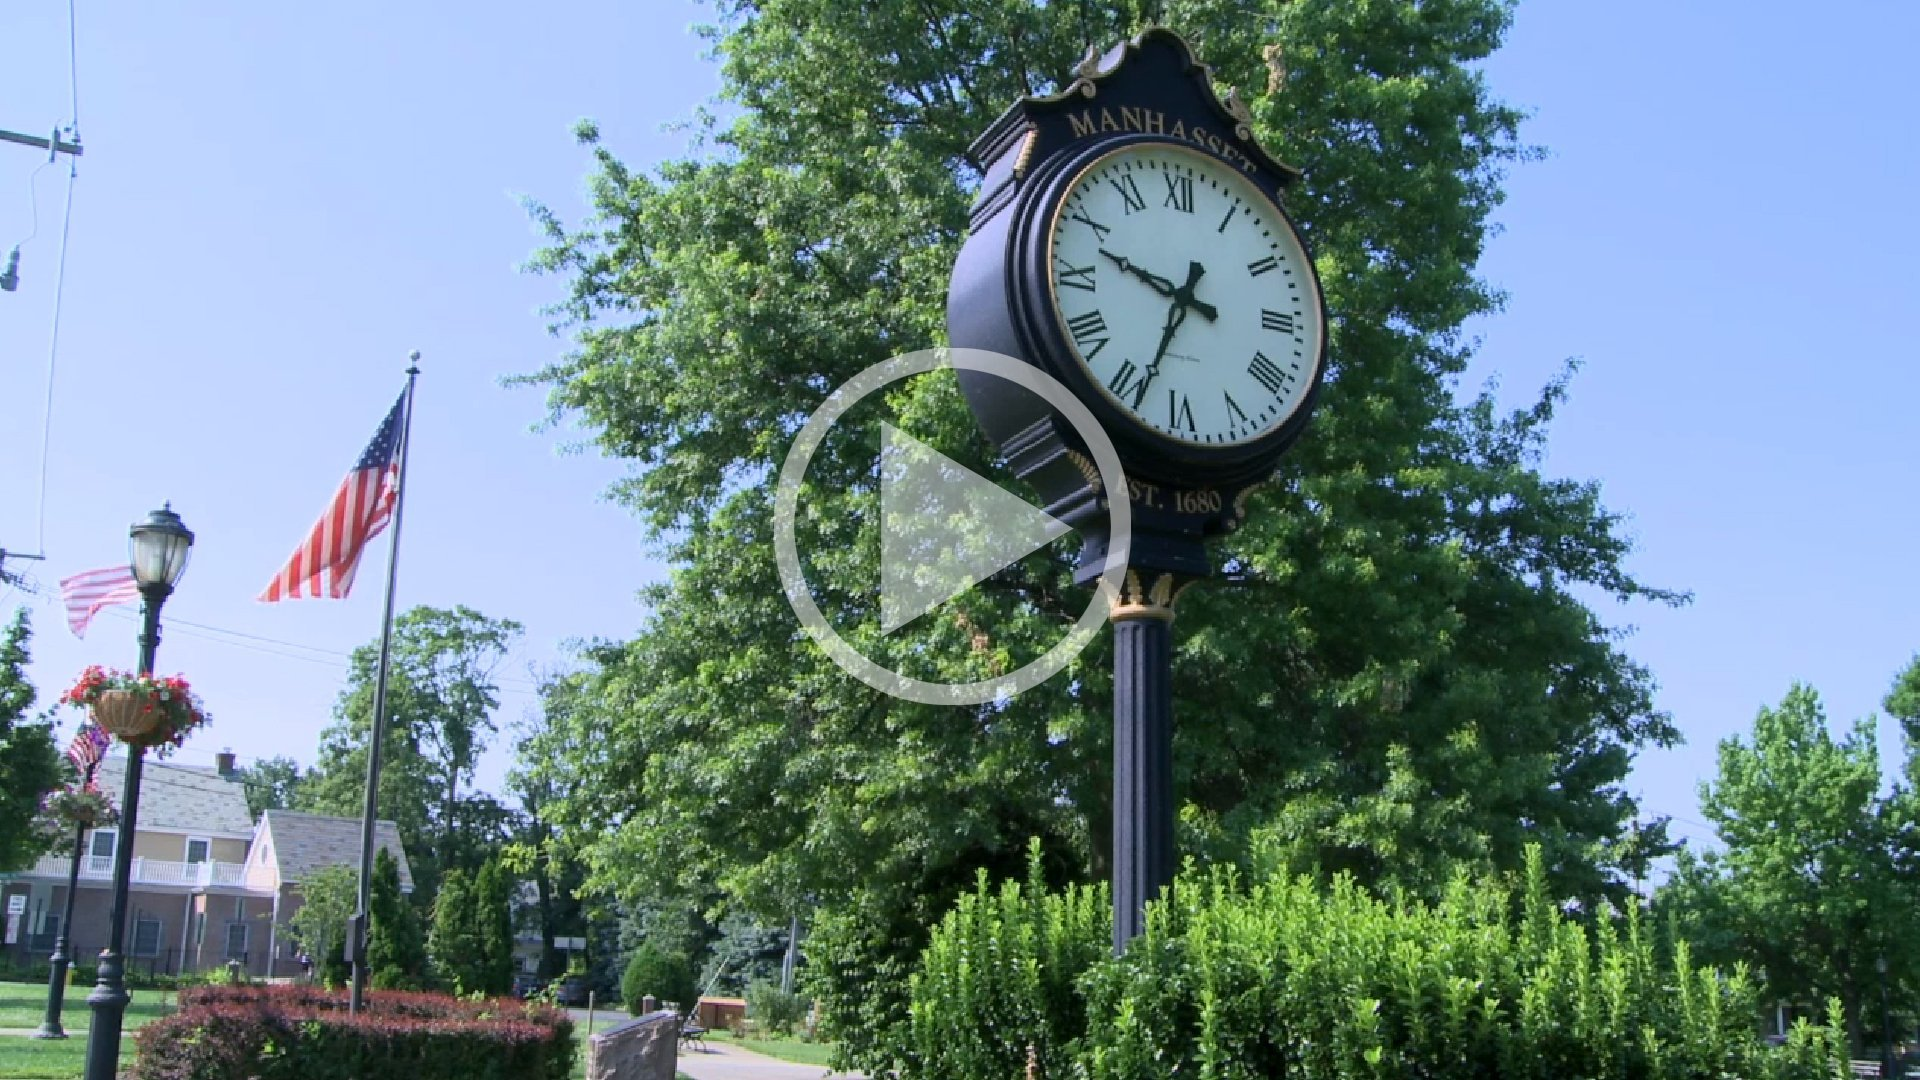 EXPLORE FLOWER HILL